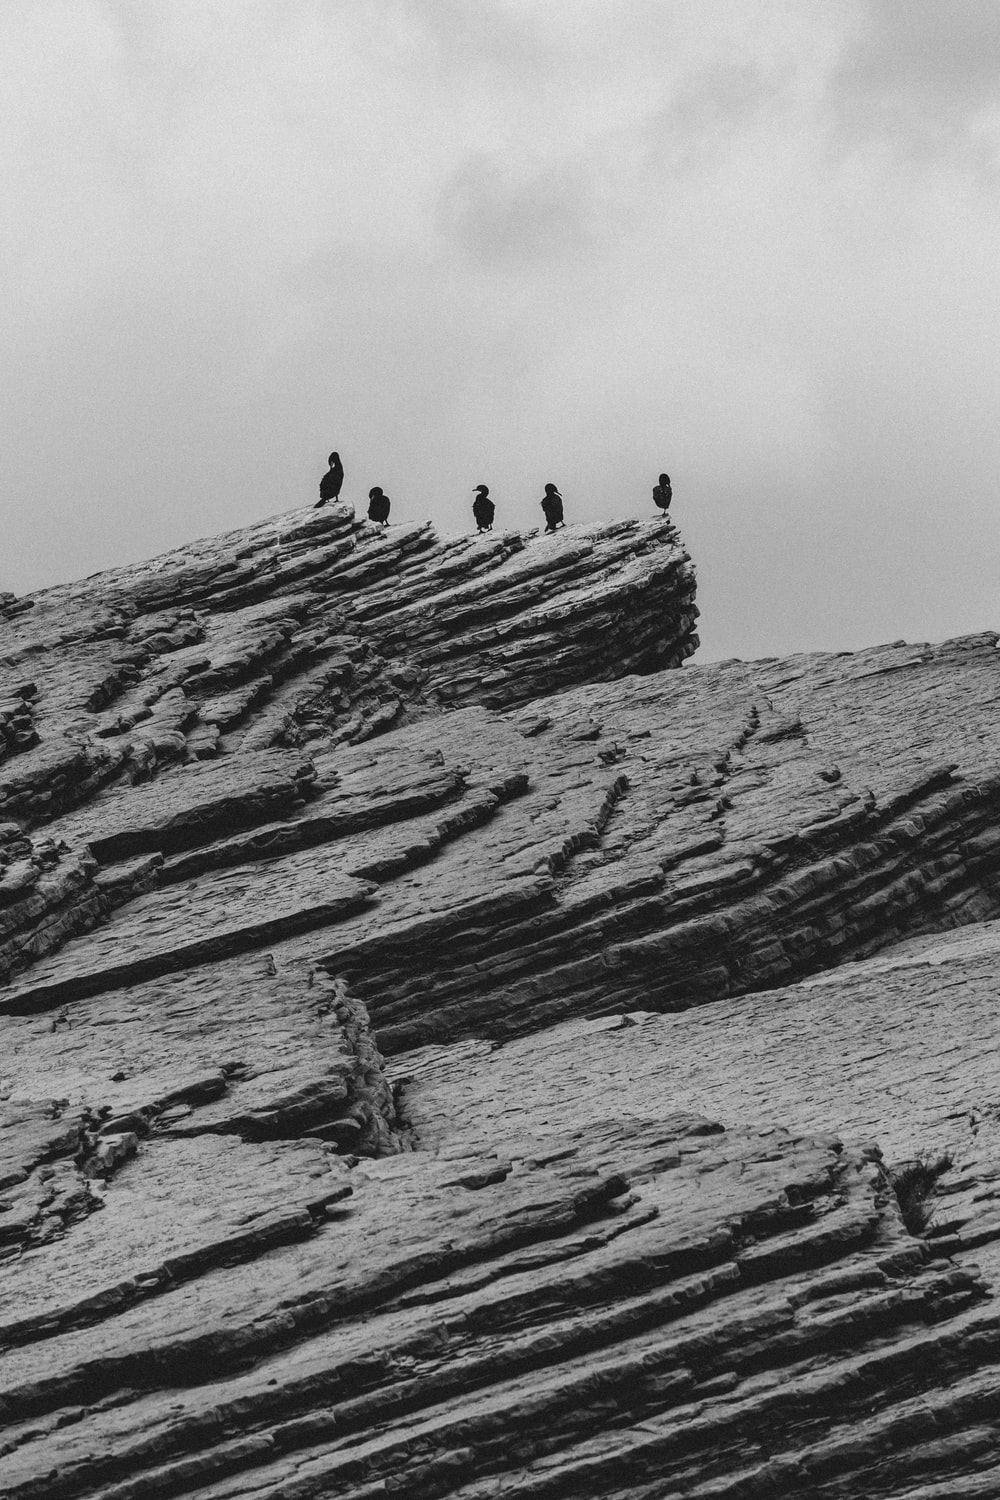 grayscale photo of rock formation near body of water